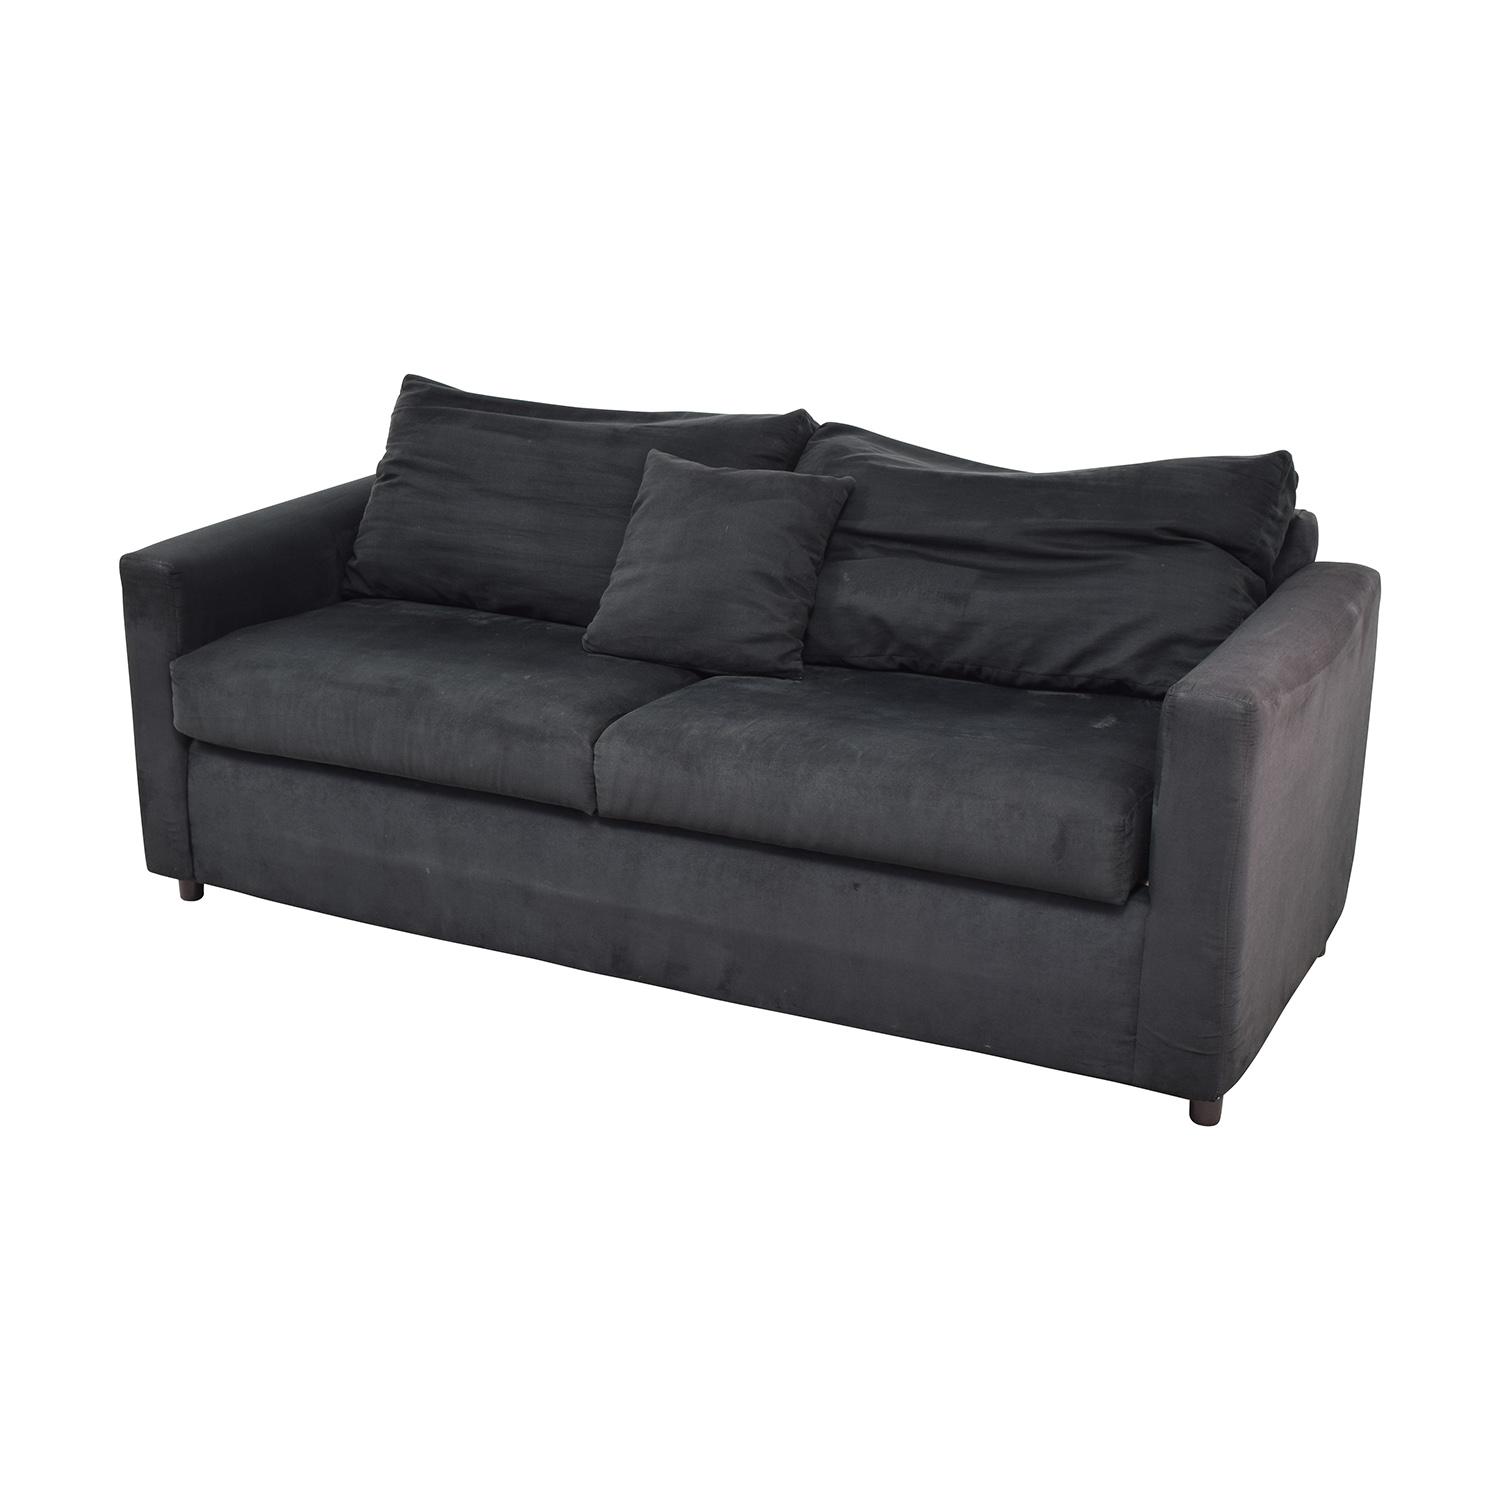 78 off bob 39 s furniture bob 39 s furniture black micro for Suede furniture